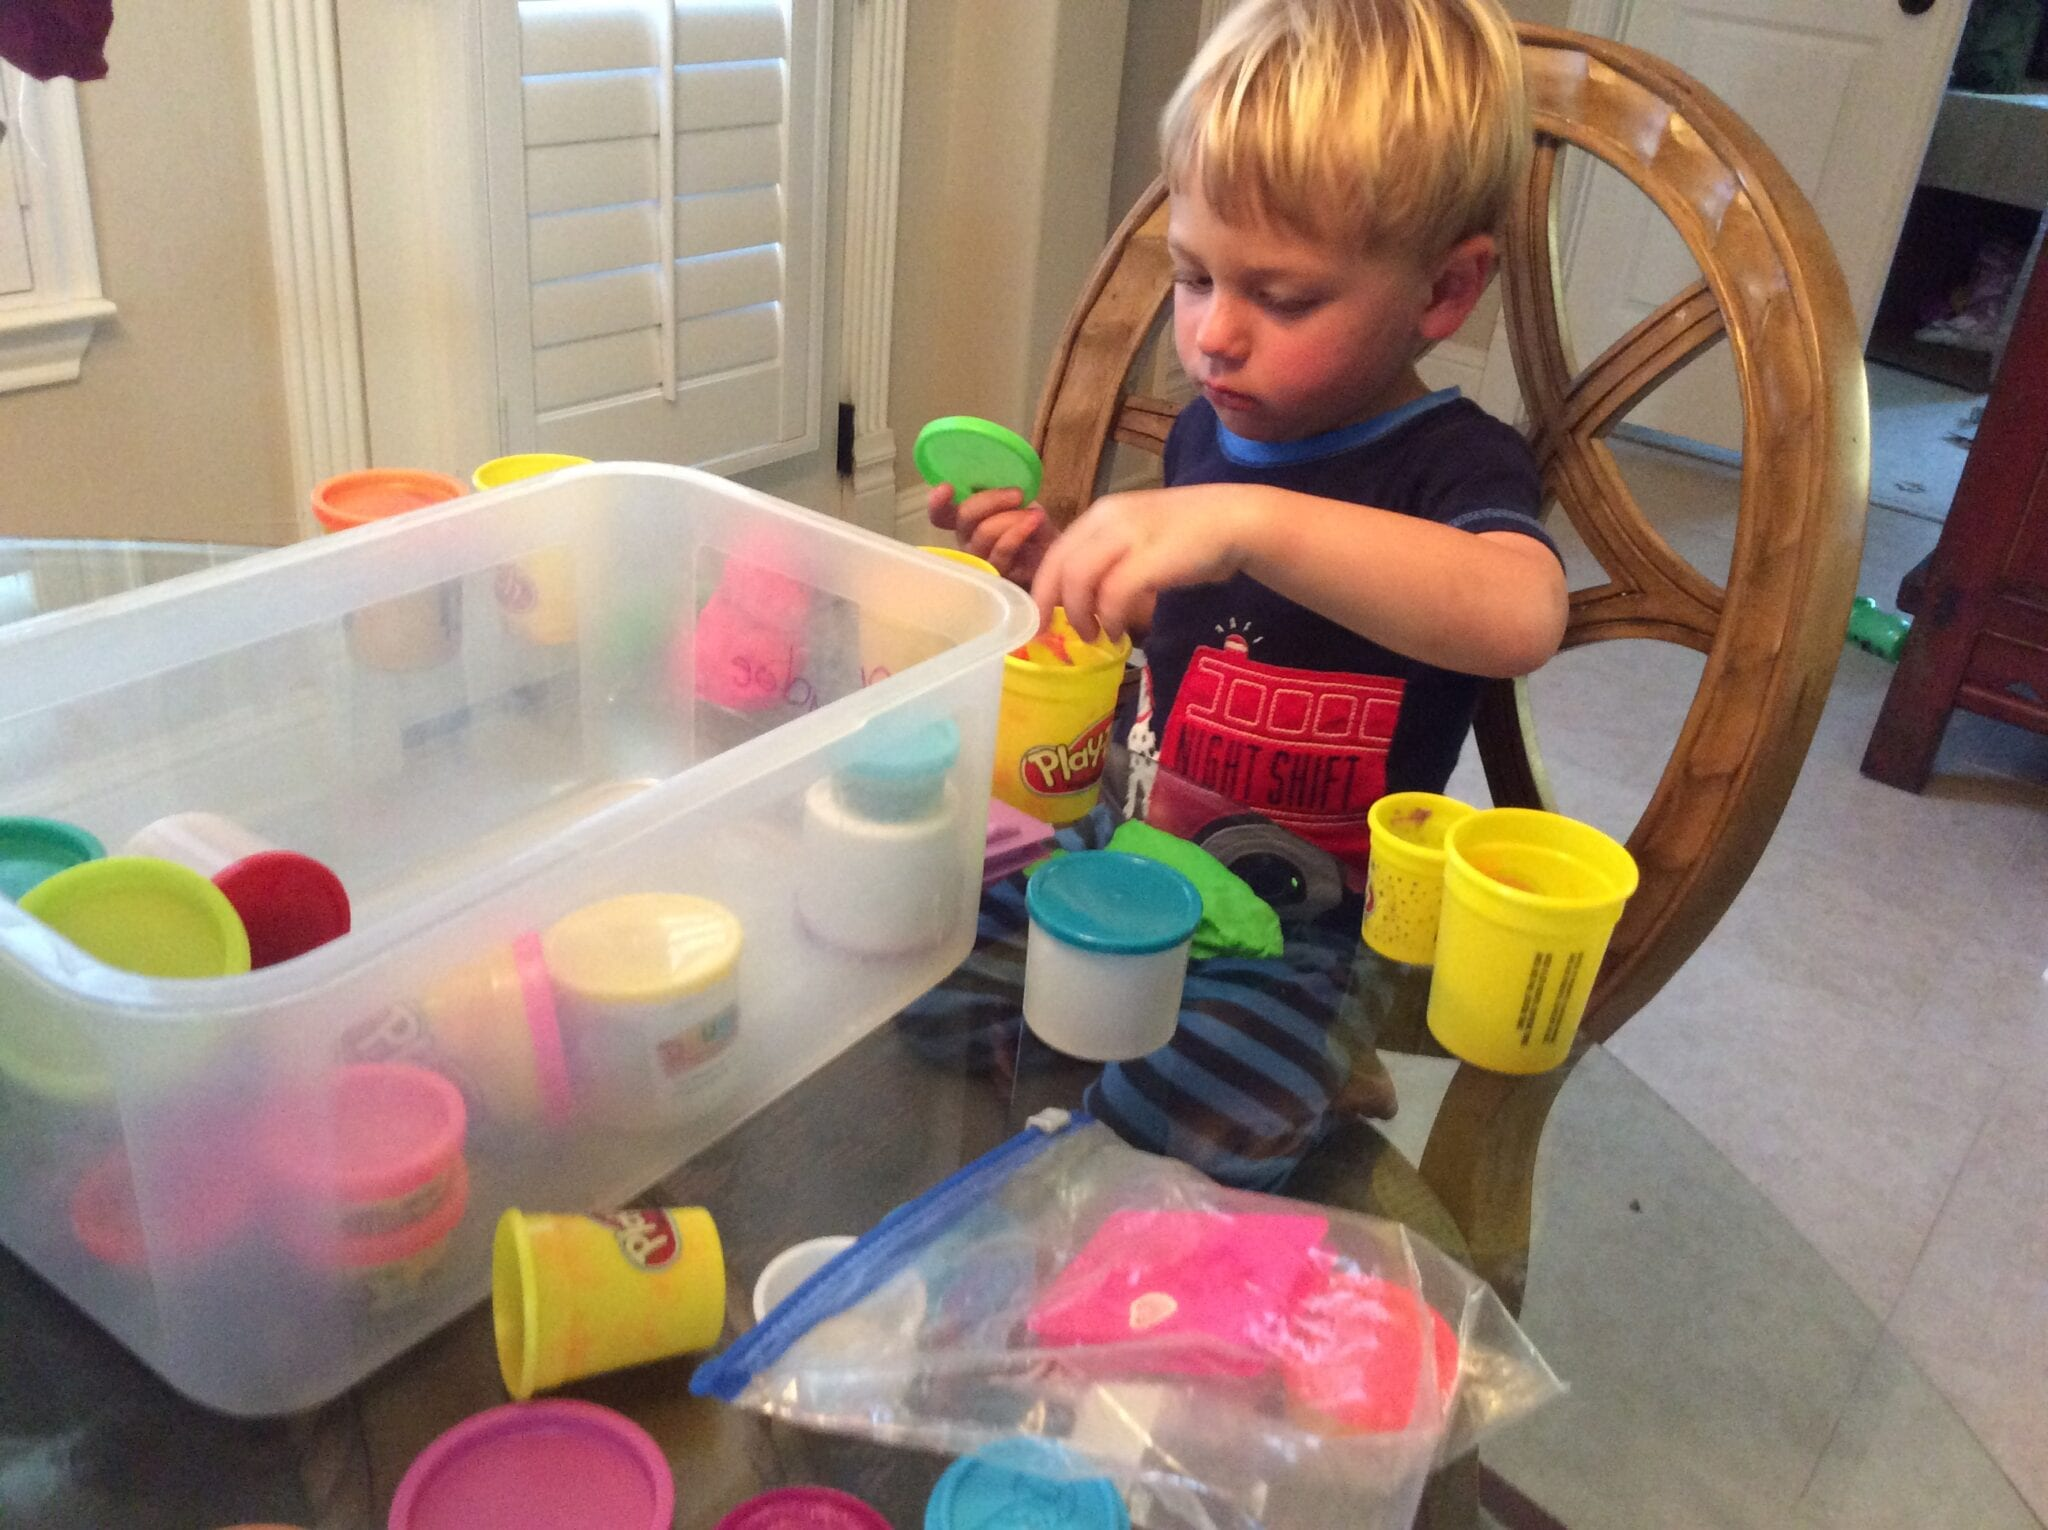 Parenting: How I Keep My Young Kids Busy So I Can Get Stuff Done